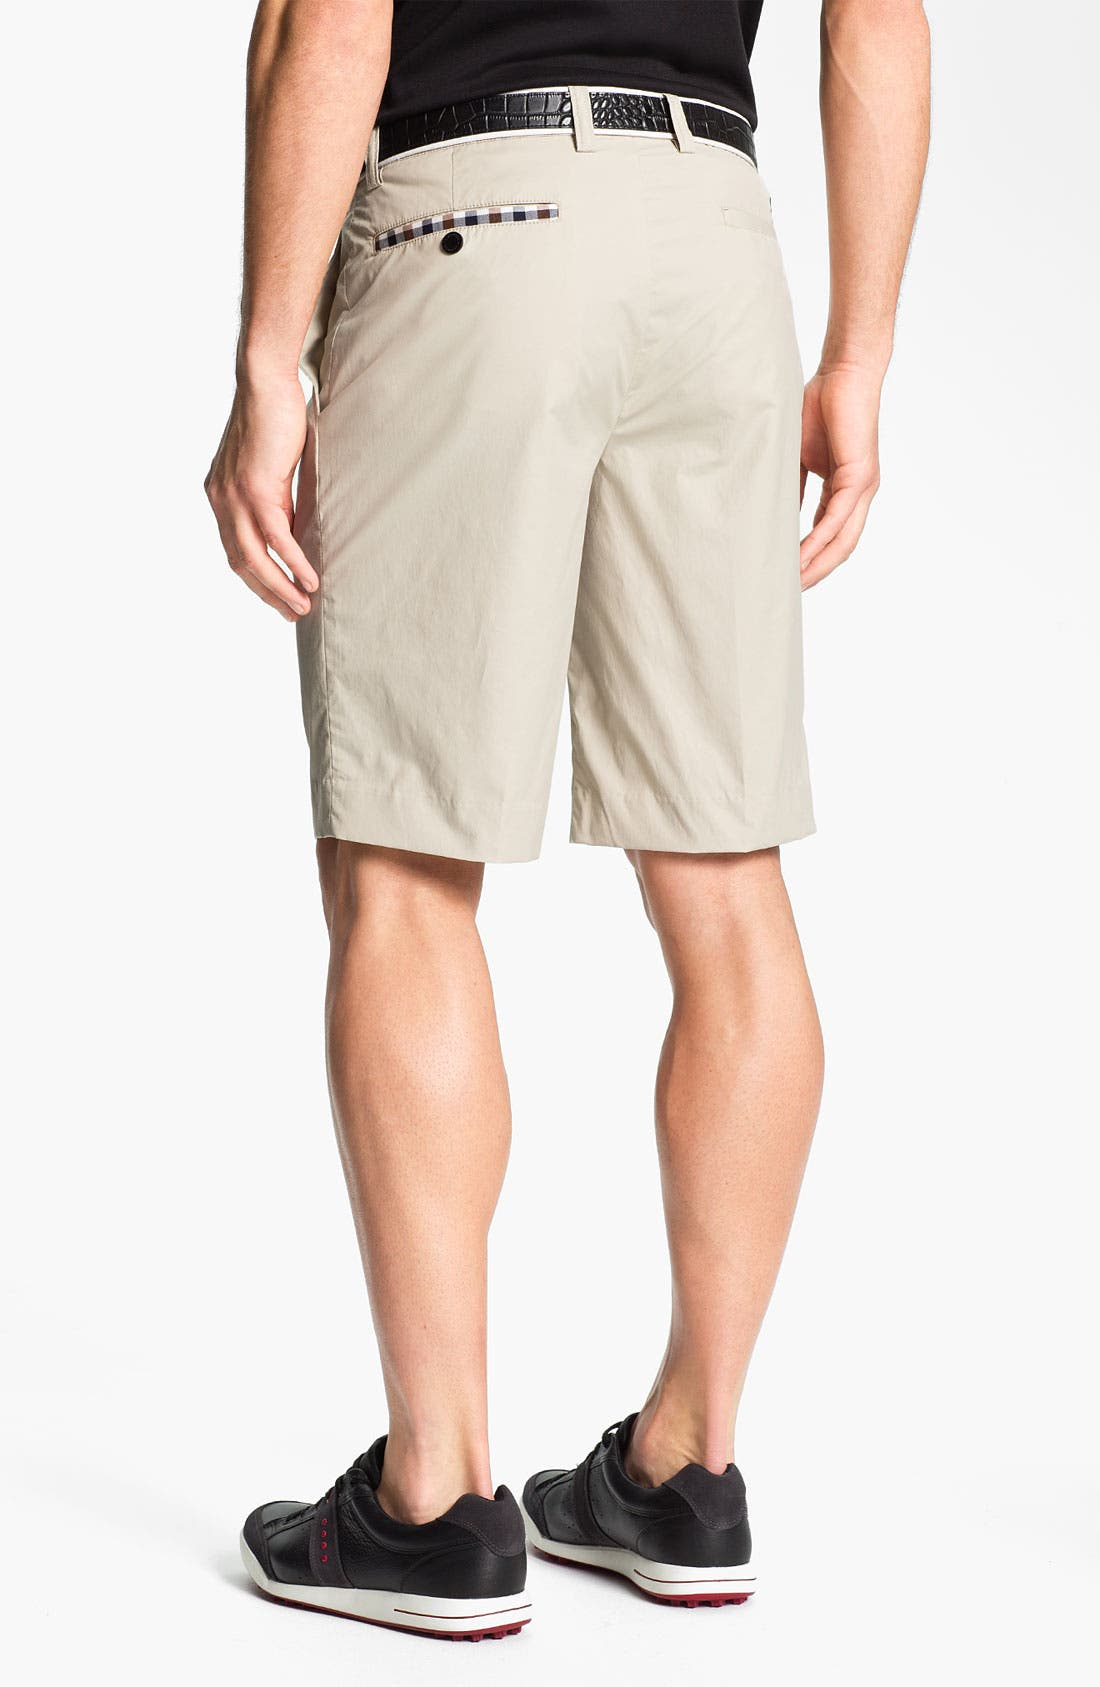 Alternate Image 2  - Aquascutum Golf 'Mash' Golf Shorts (Online Only)